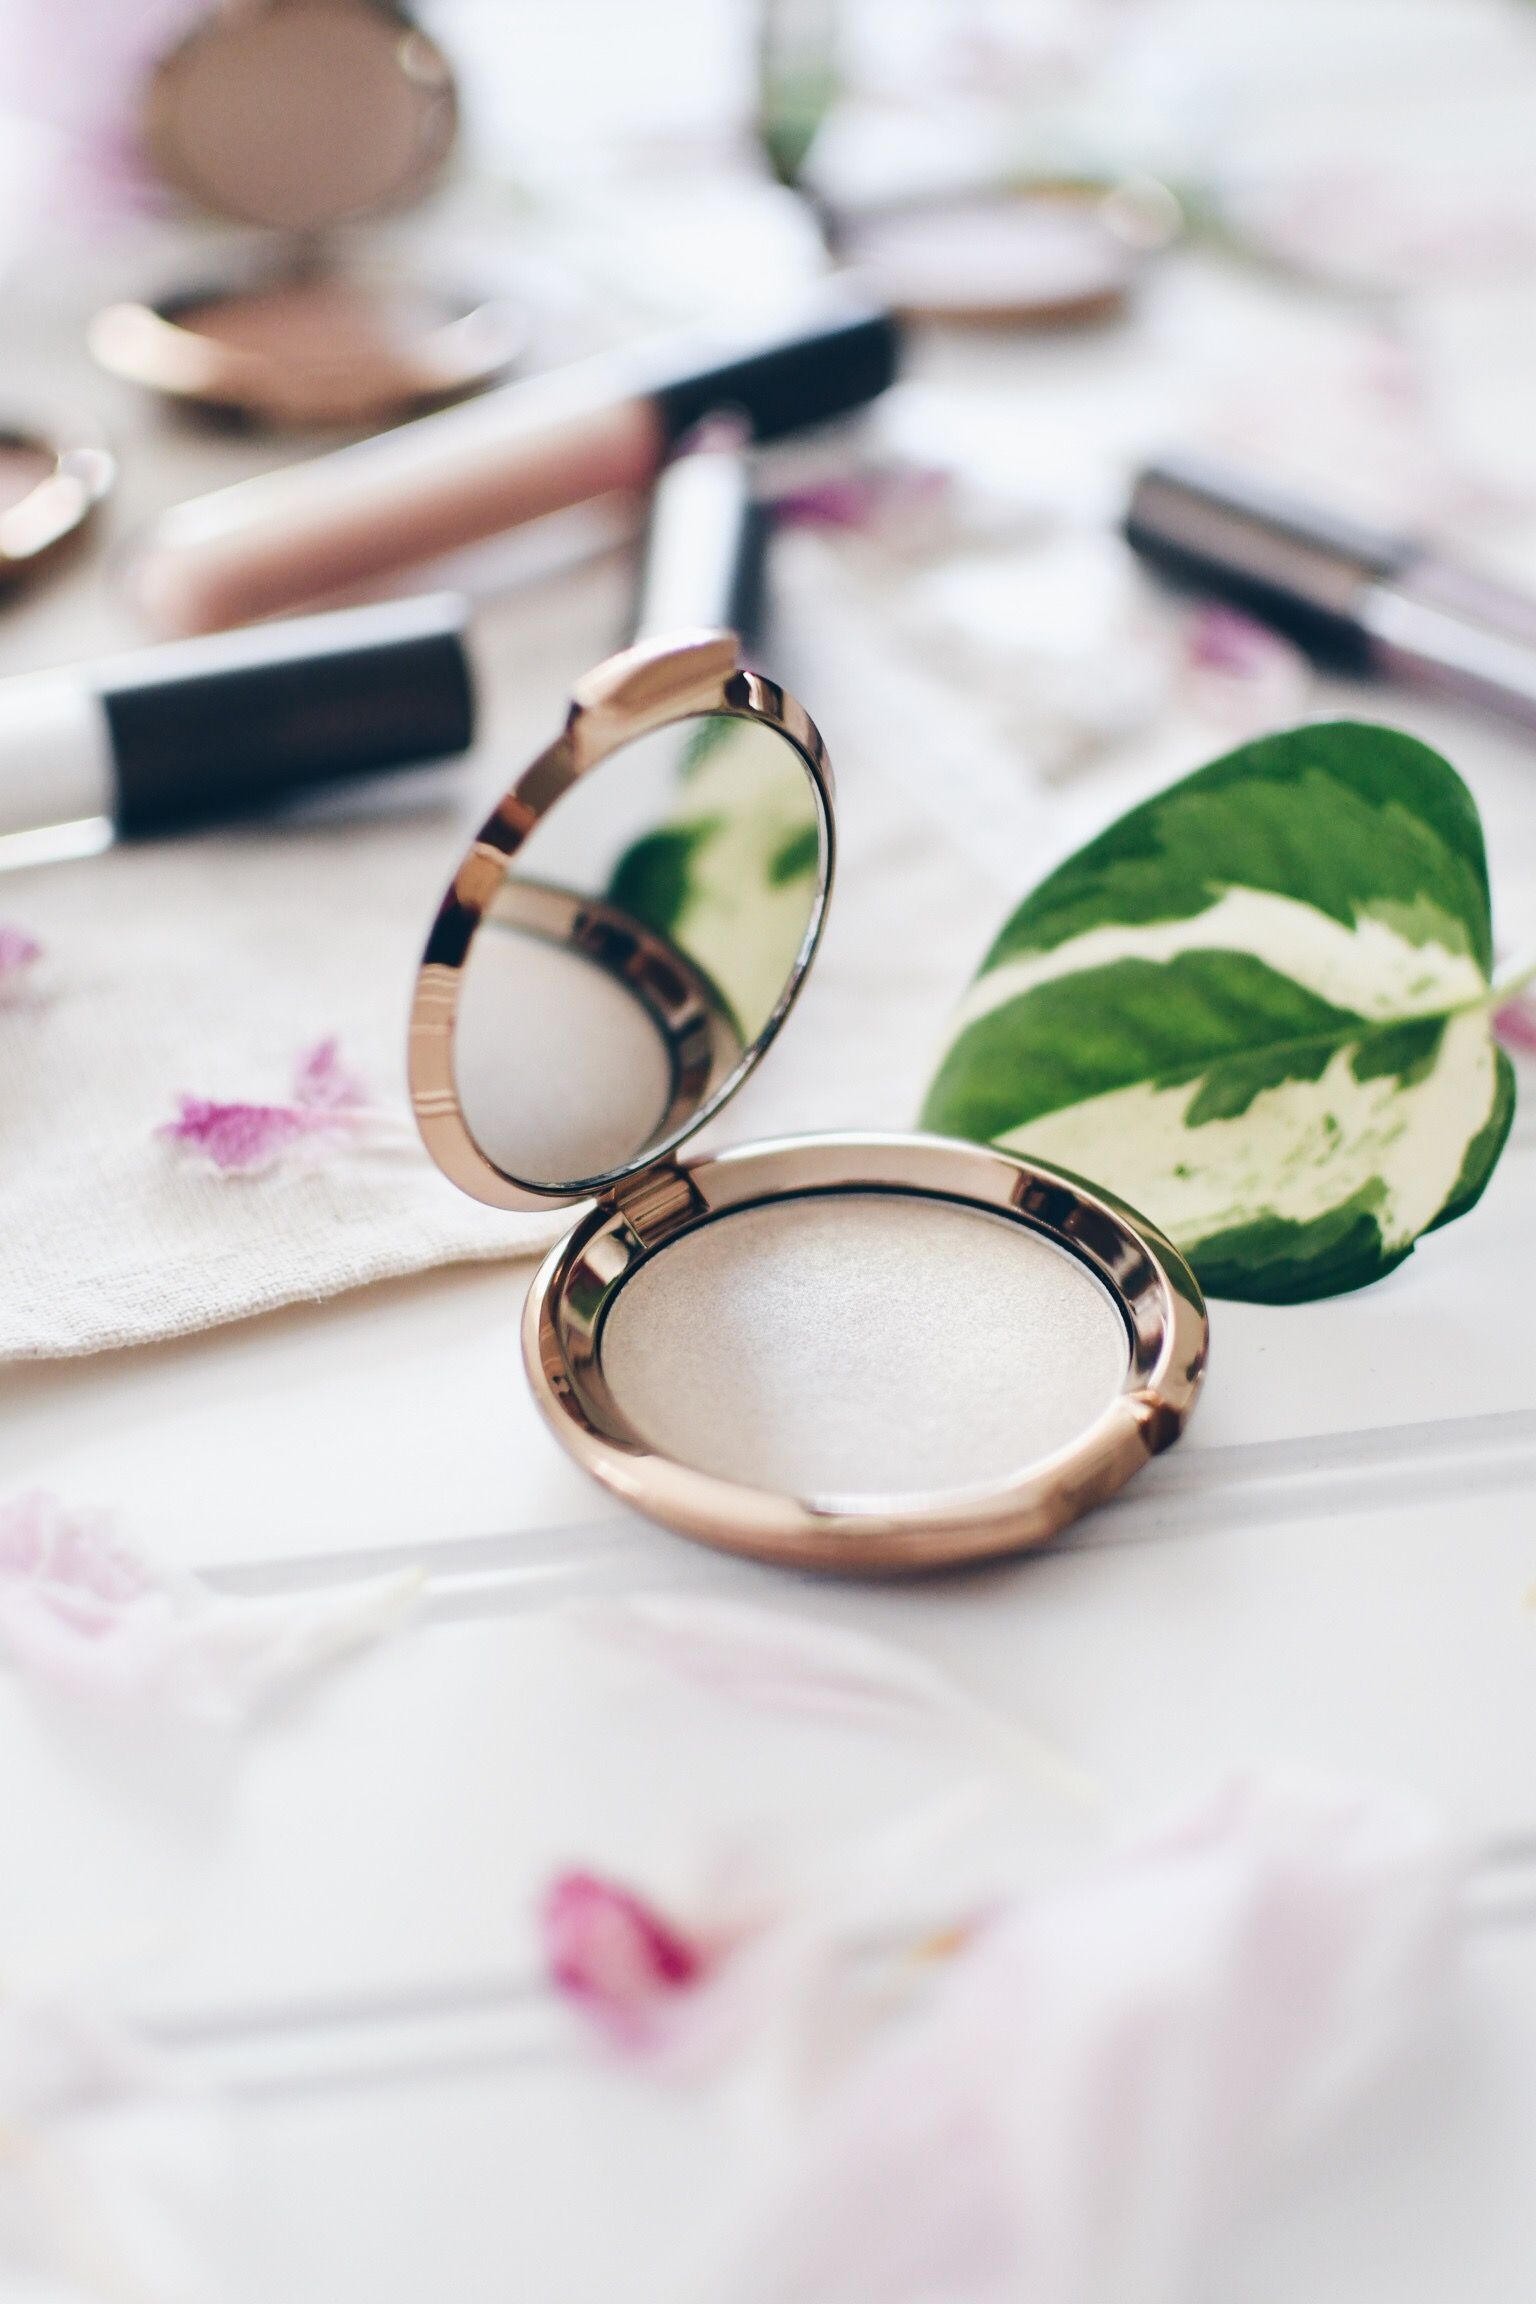 Becca Cosmetics Light Chaser Highlighter Pearl Flashes Gold